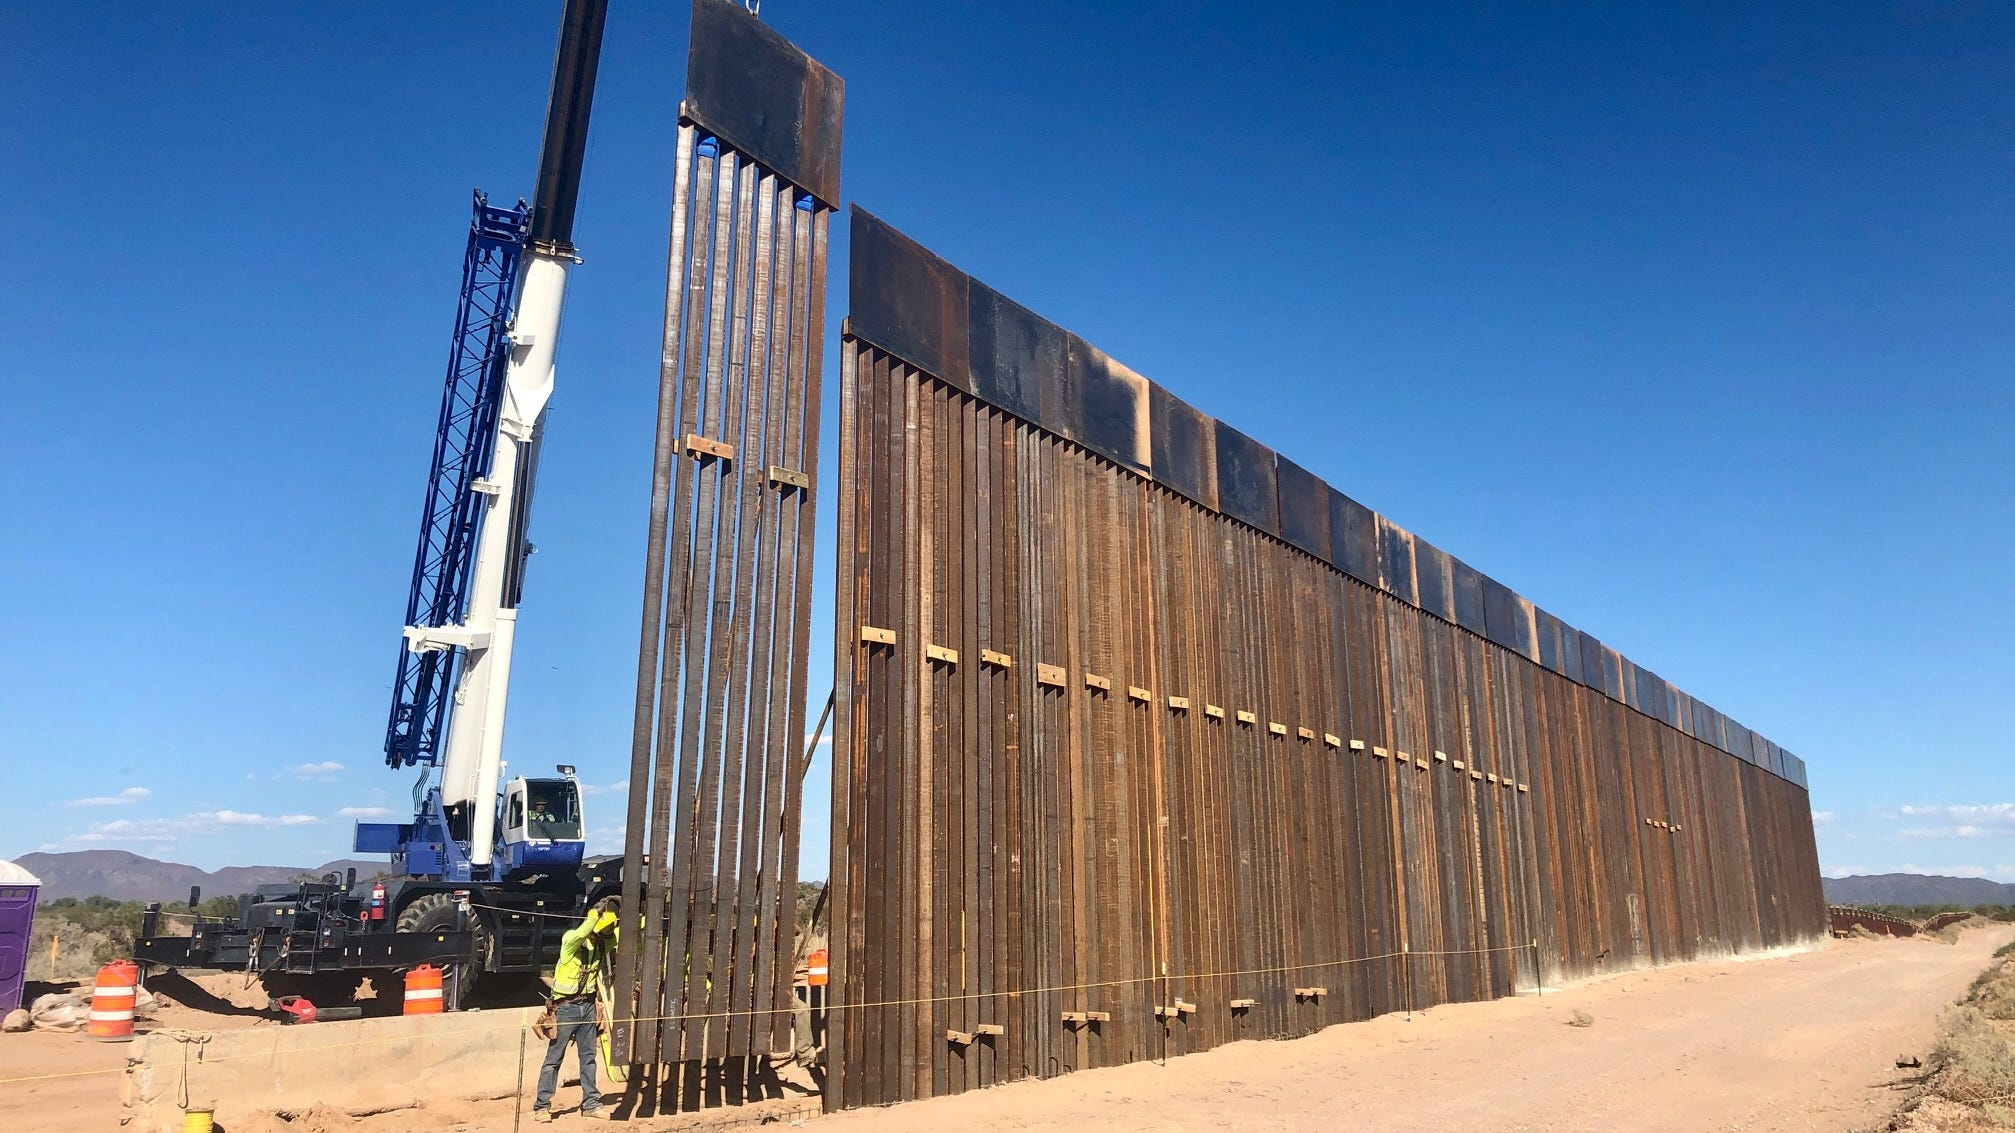 Sacred Native American site in Arizona blasted for border wall construction